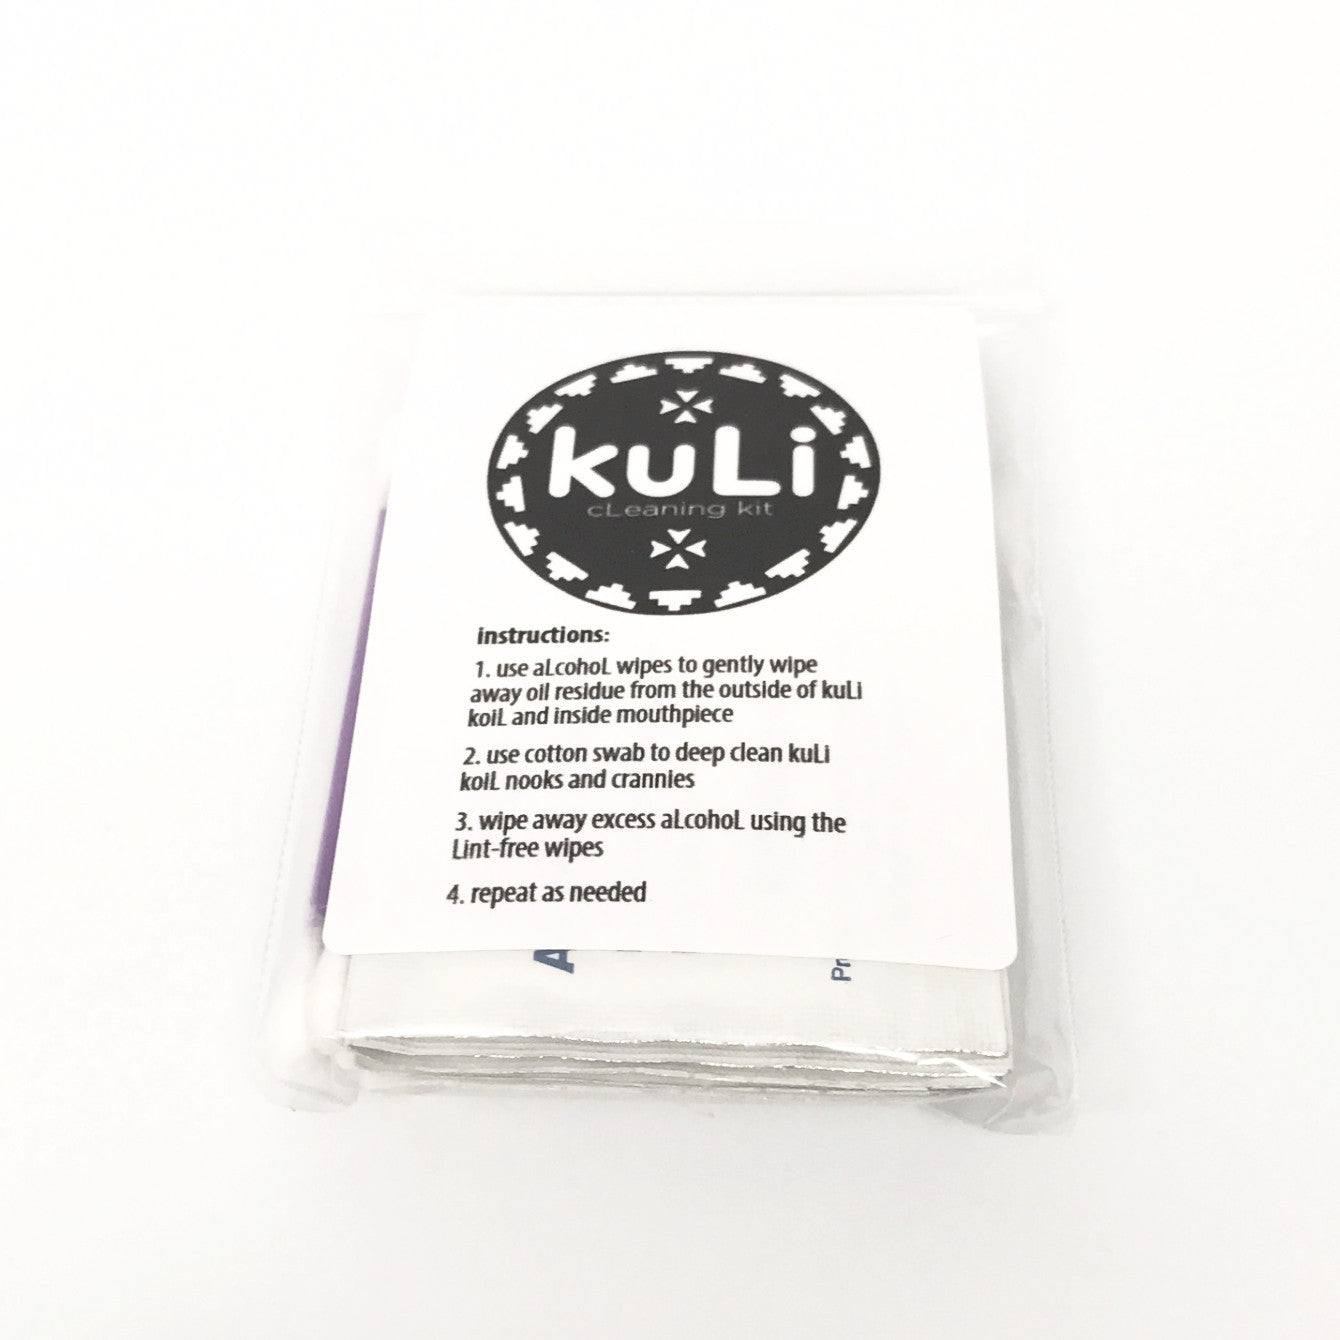 kuLi cLeaning kit